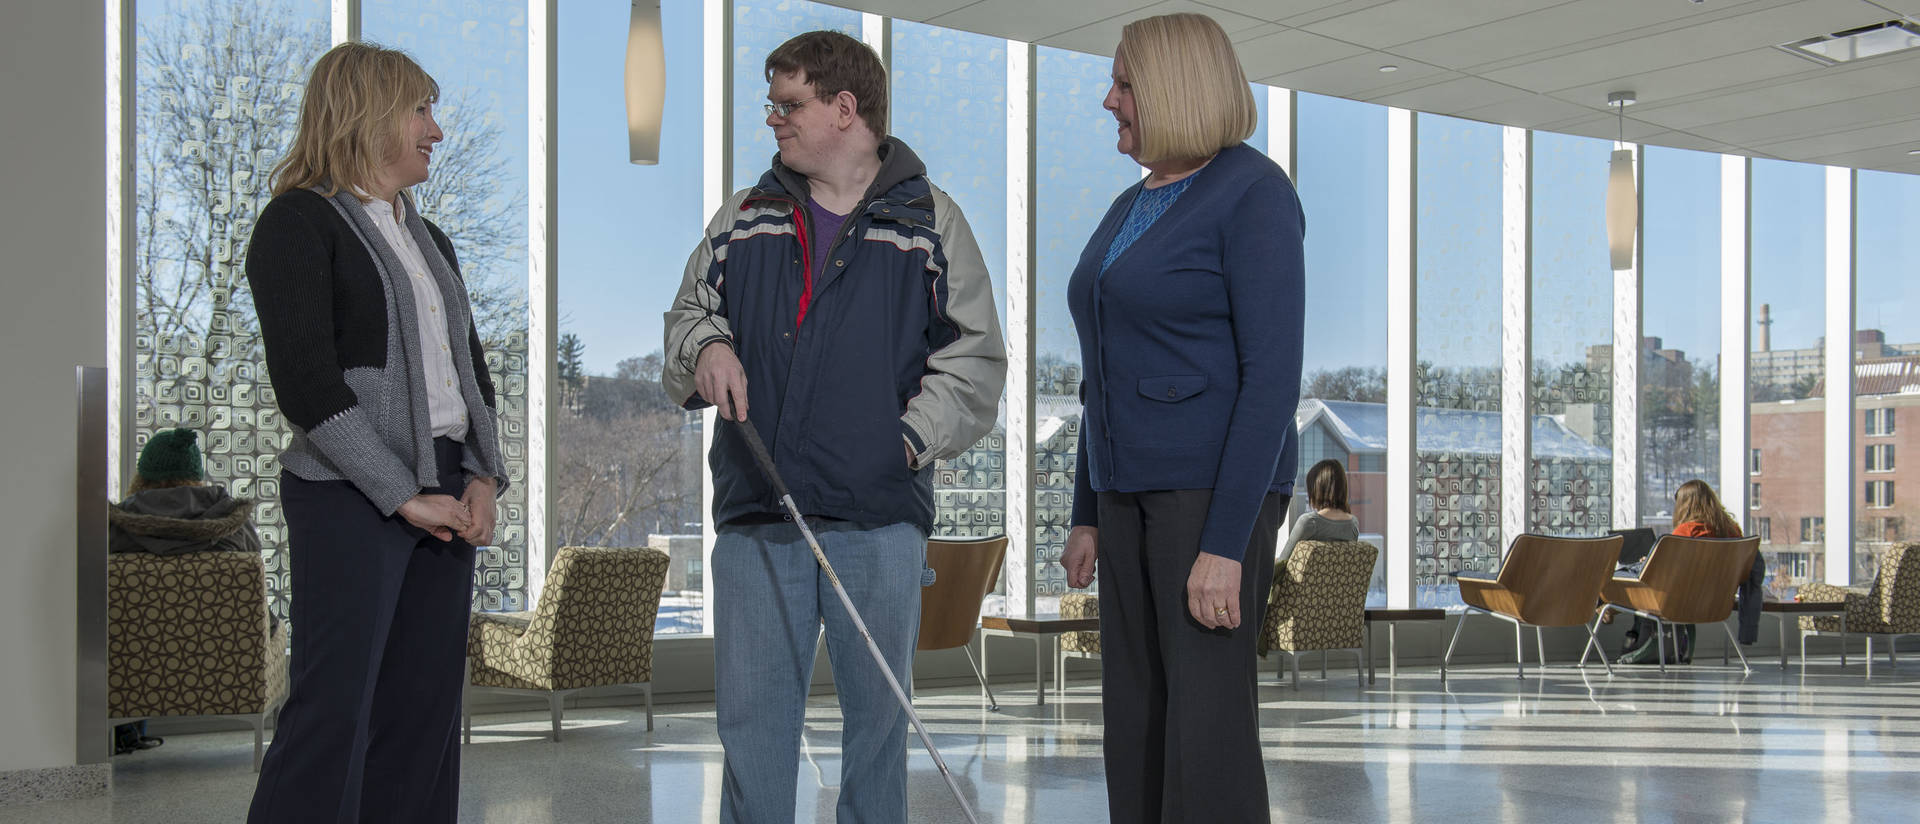 Student with visual aid cane and SSD staff in Centennial Hall atrium